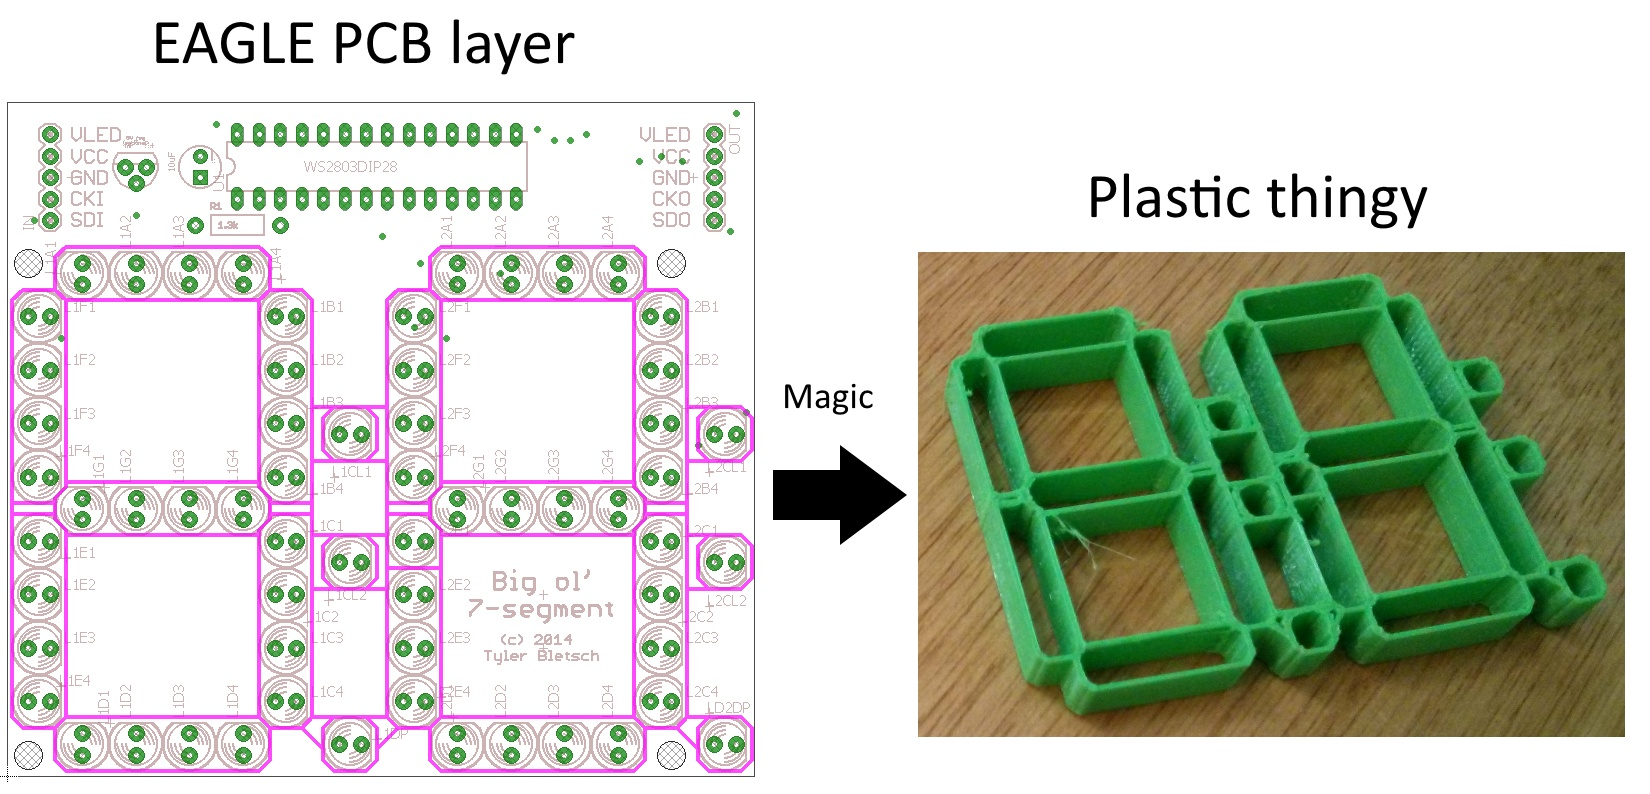 Generating 3d Printable Pieces Directly From Eagle Pcb Designs Printed Circuit Board Design